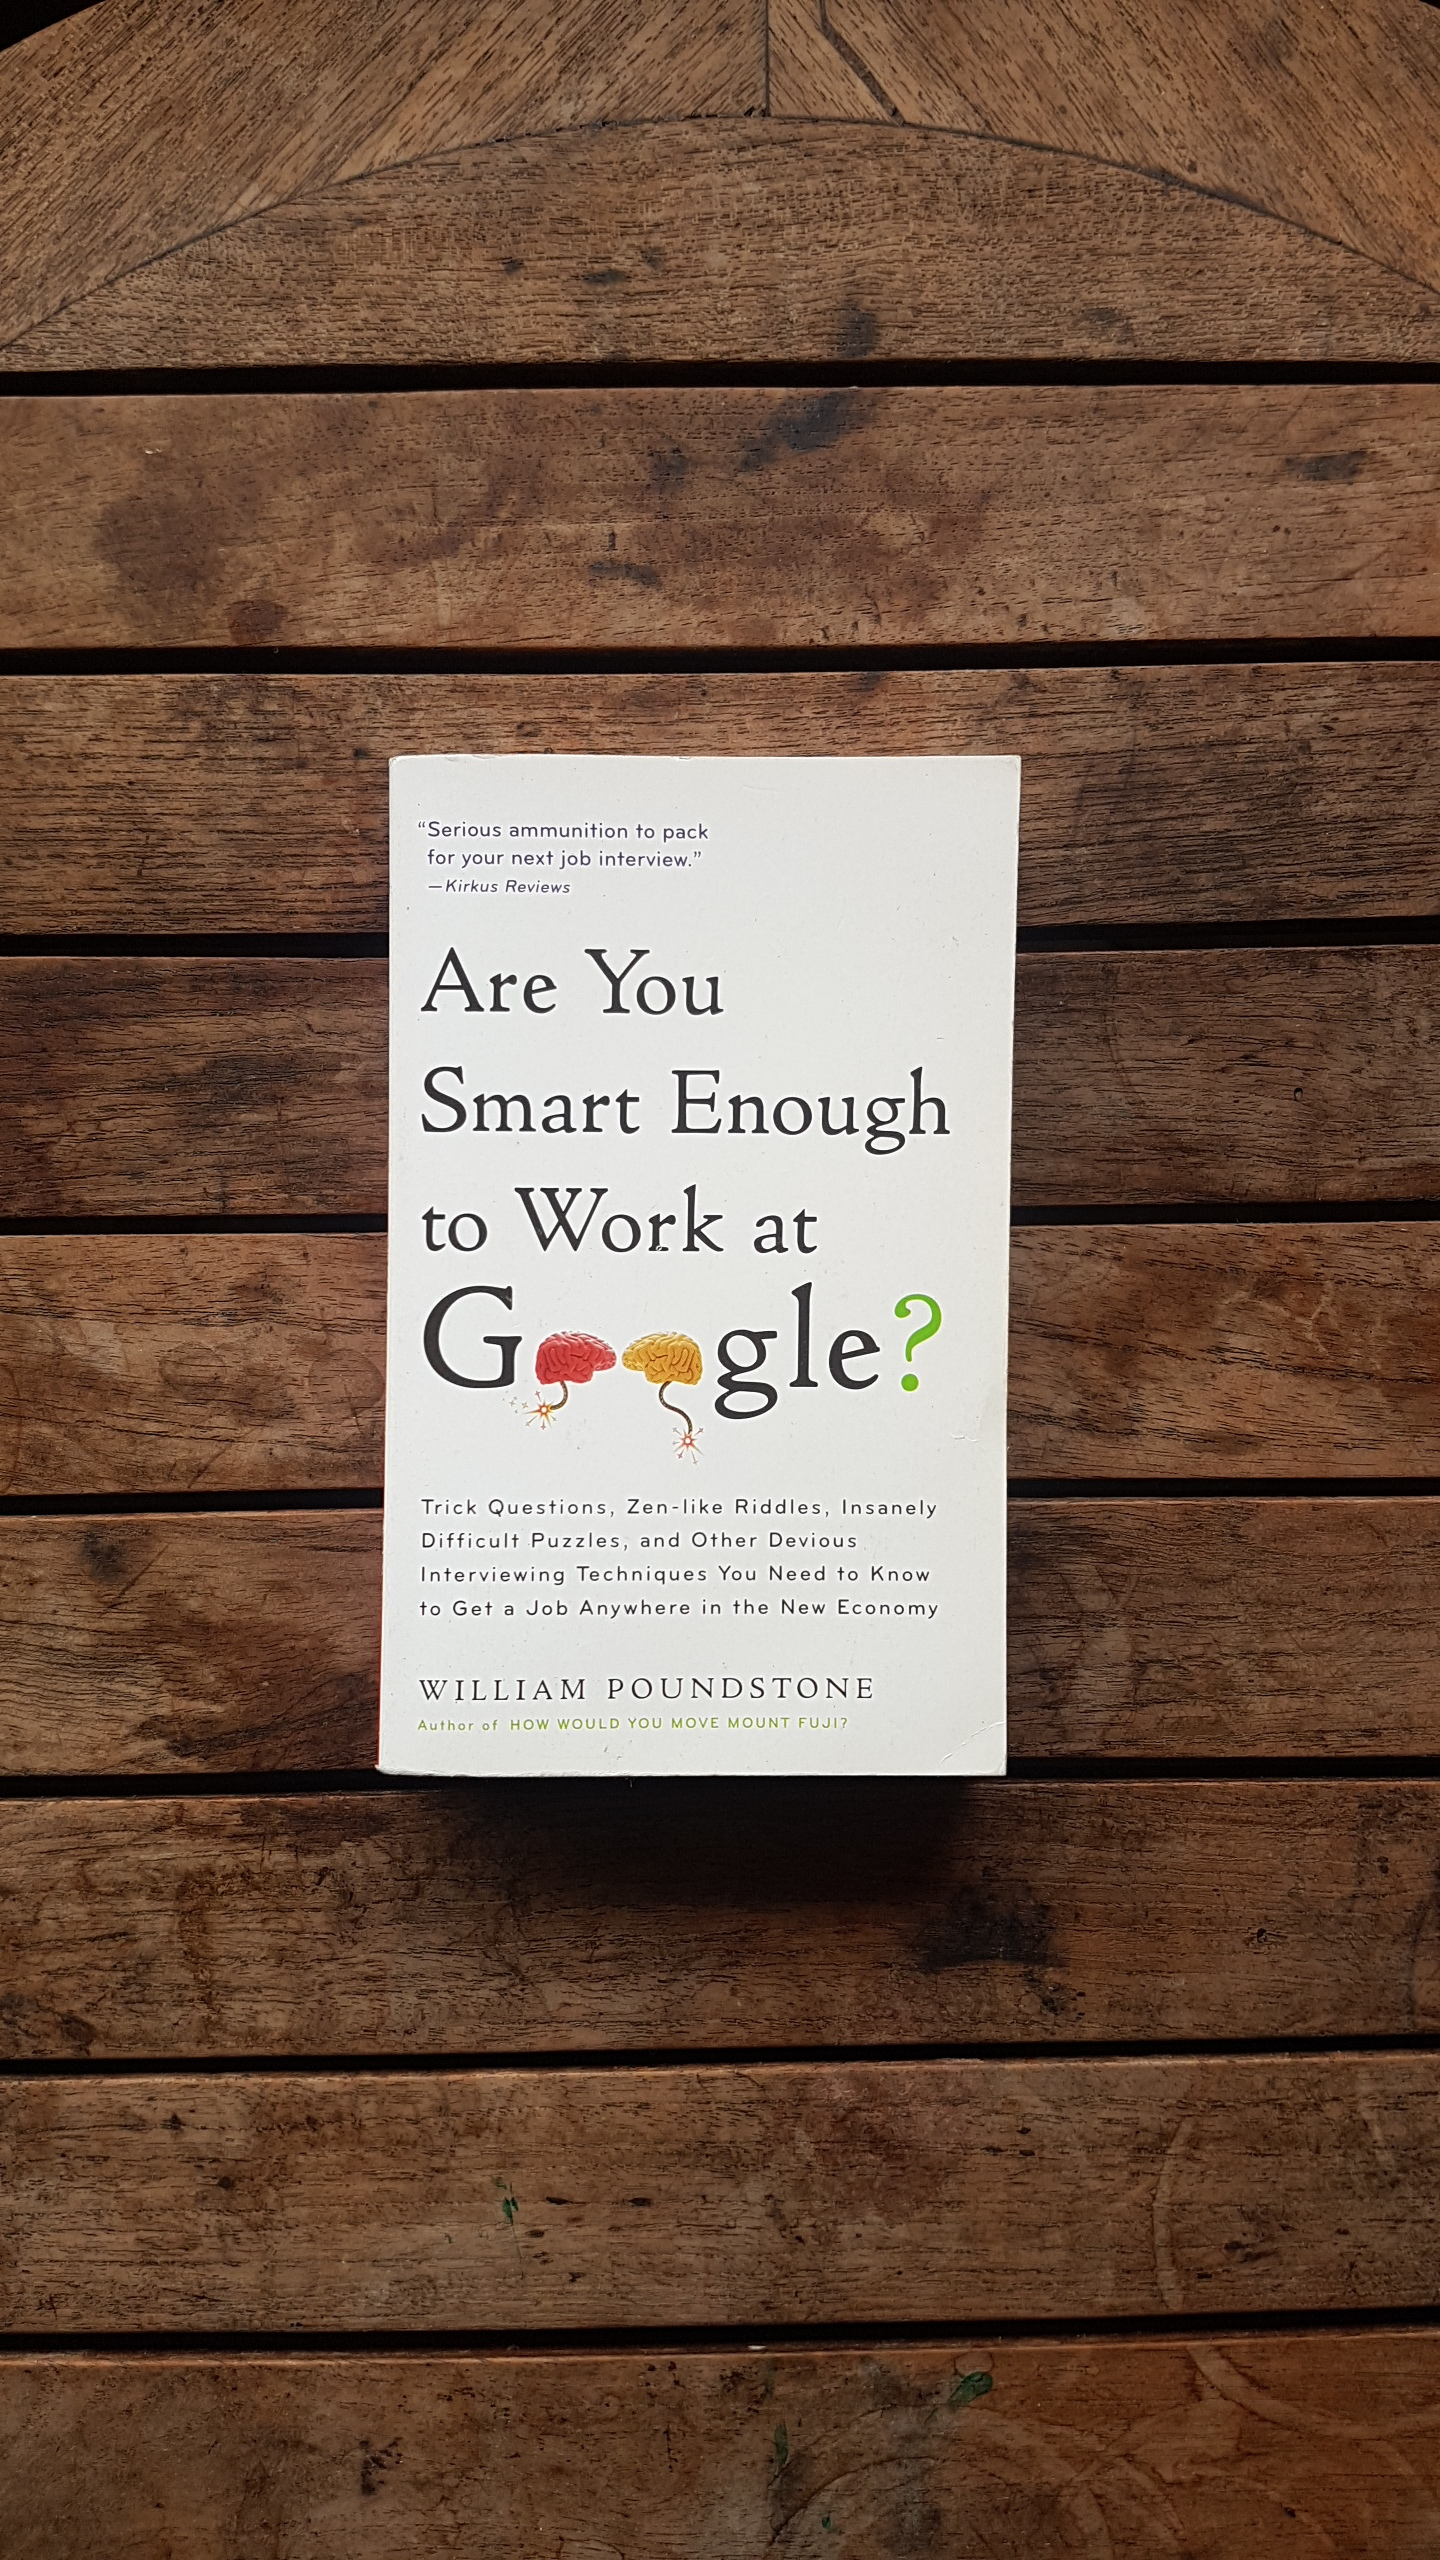 Are You Smart Enough to Work at Google?: Trick Questions, Zen-like Riddles, Insanely Difficult Puzzles, and Other Devious Interviewing Techniques You ... Know to Get a Job Anywhere in the New Economy   by William Poundstone